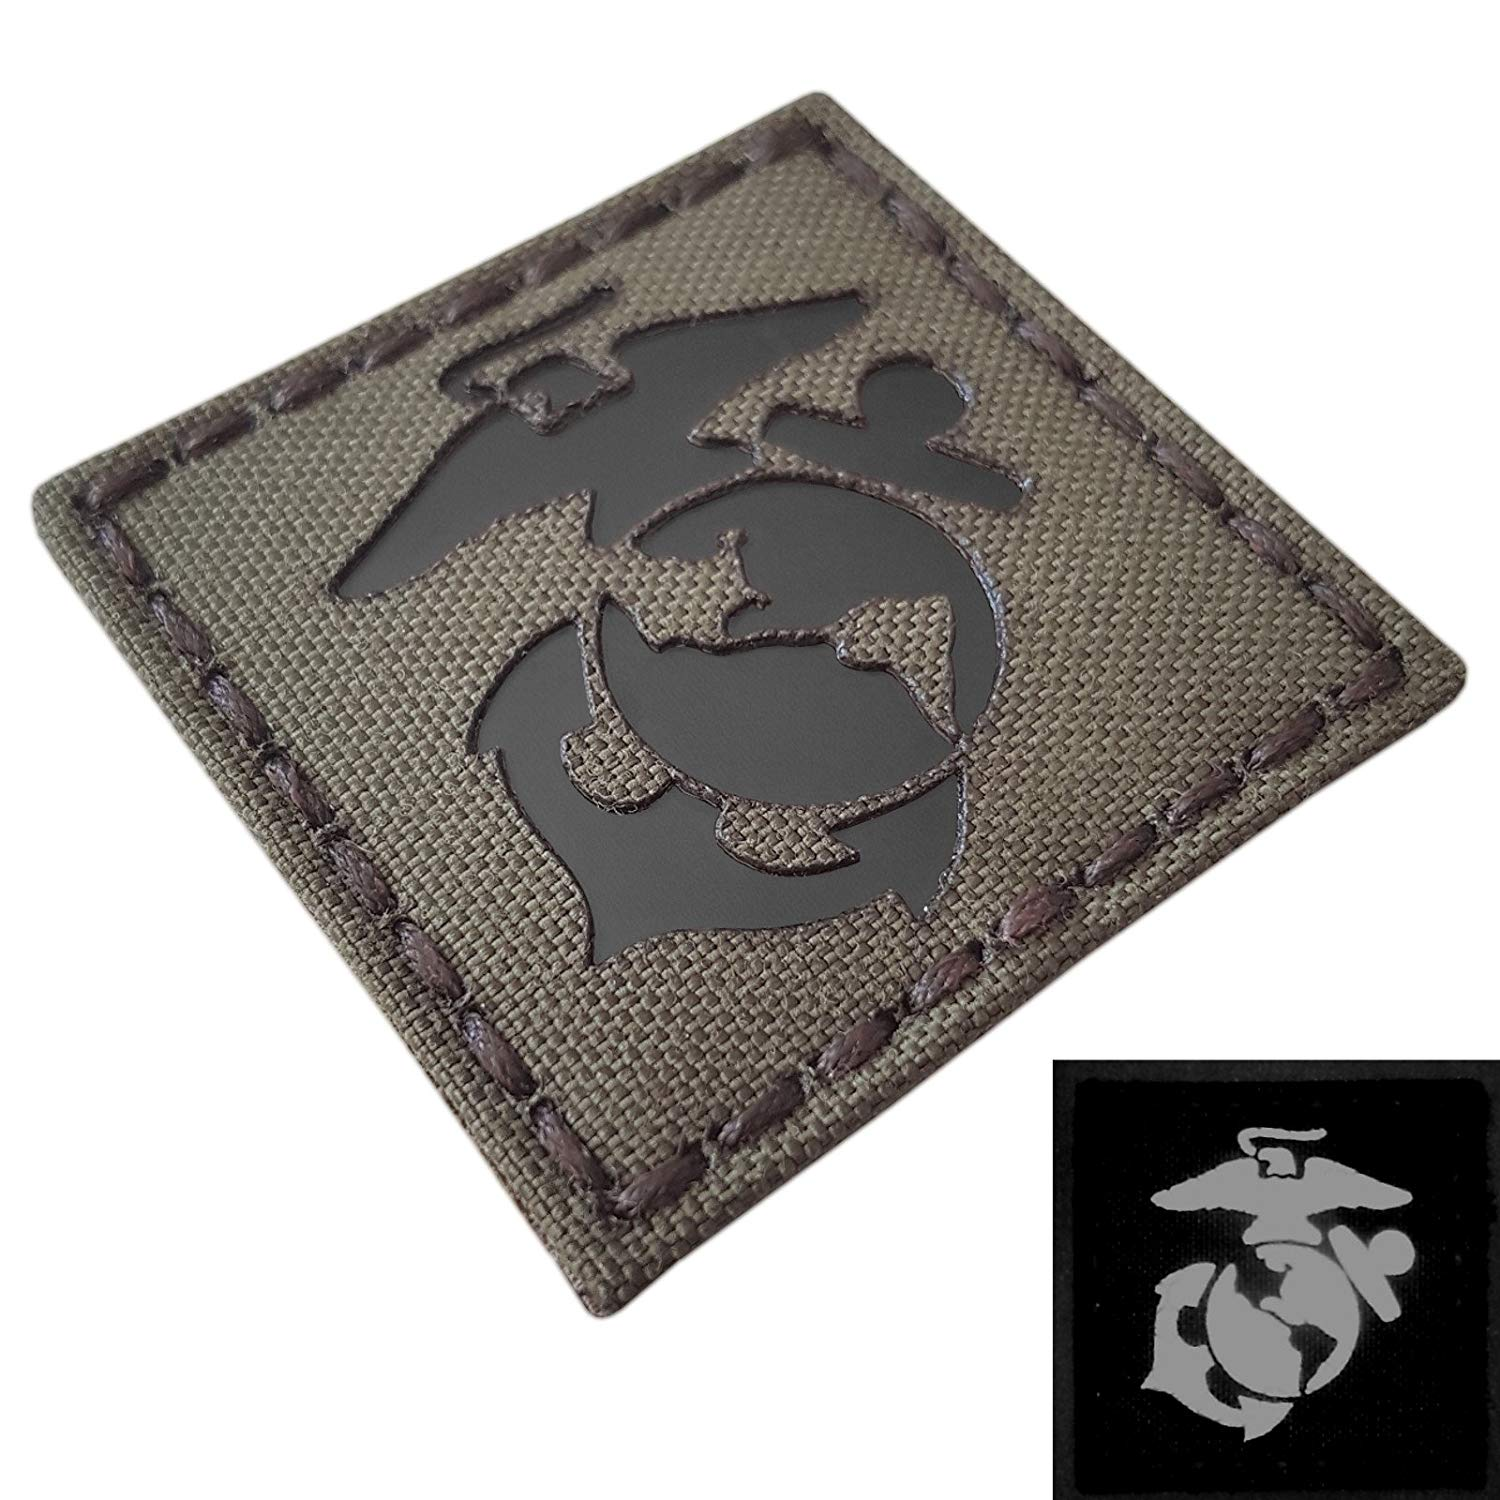 IR Ranger Green USMC Marines Semper Fidelis Fi Infrared 2x2 Templar Tactical Morale Touch Fastener Patch